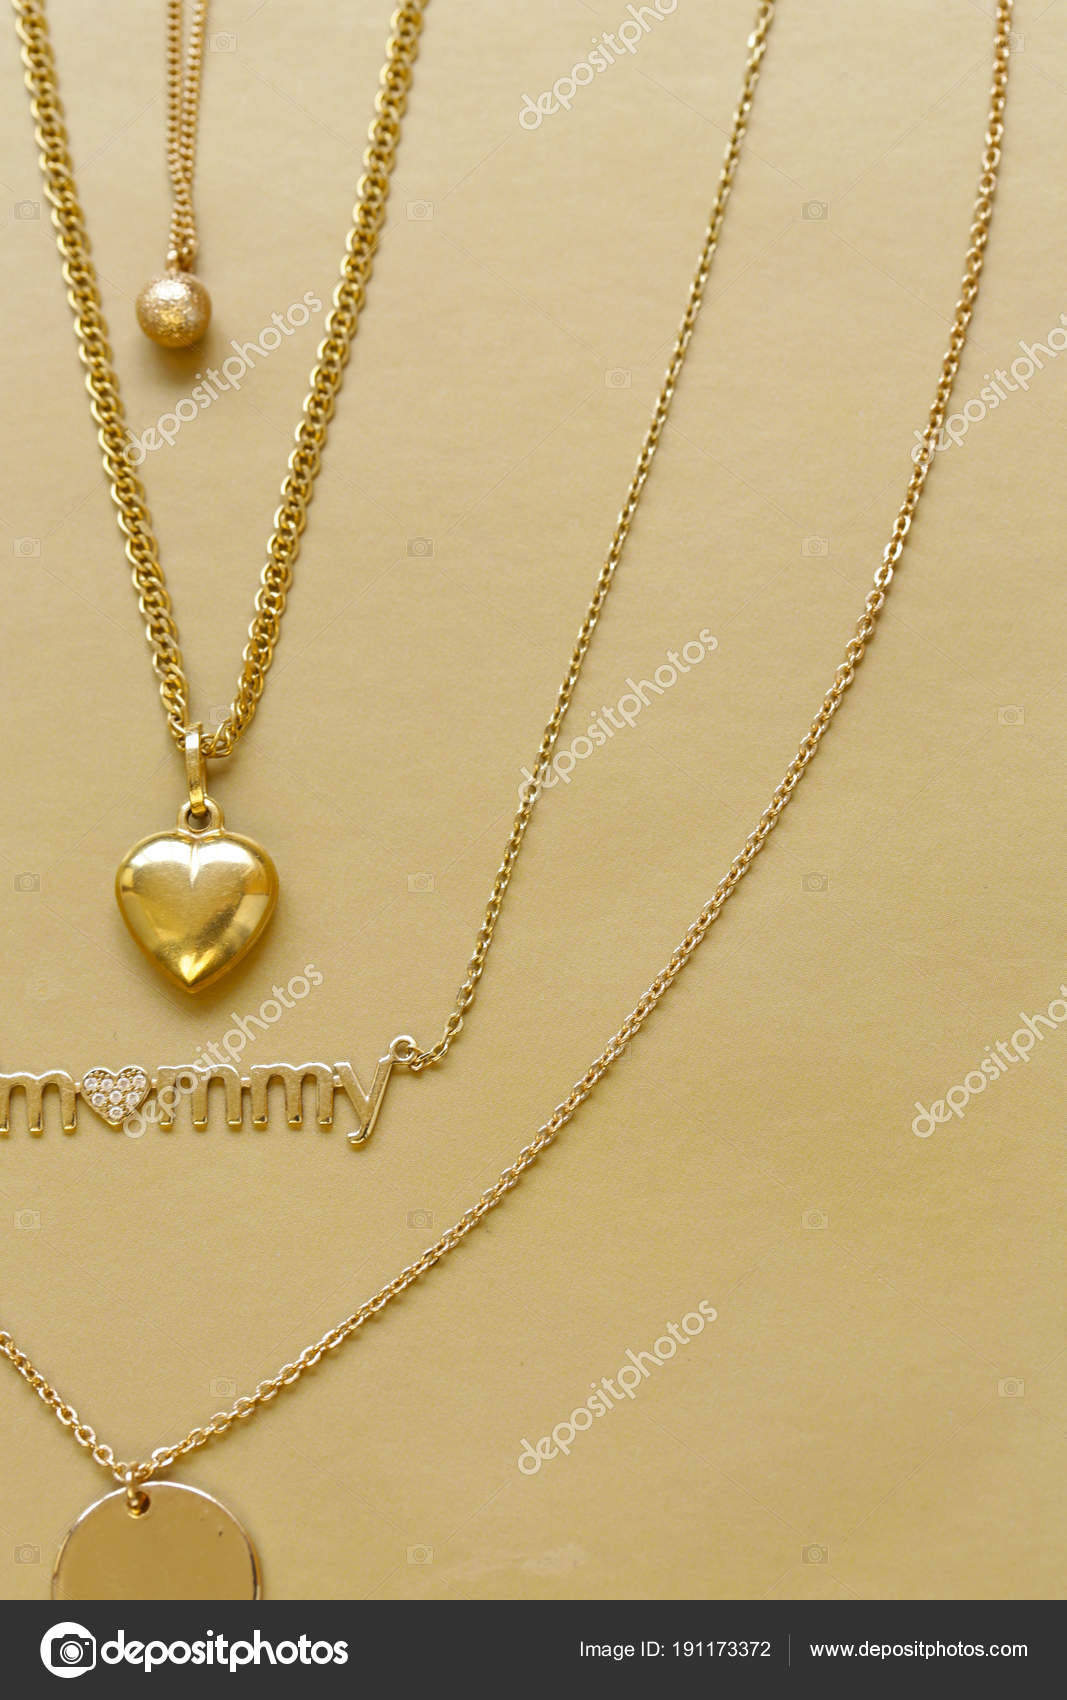 necklaces gold depositphotos pendants stock photo chains